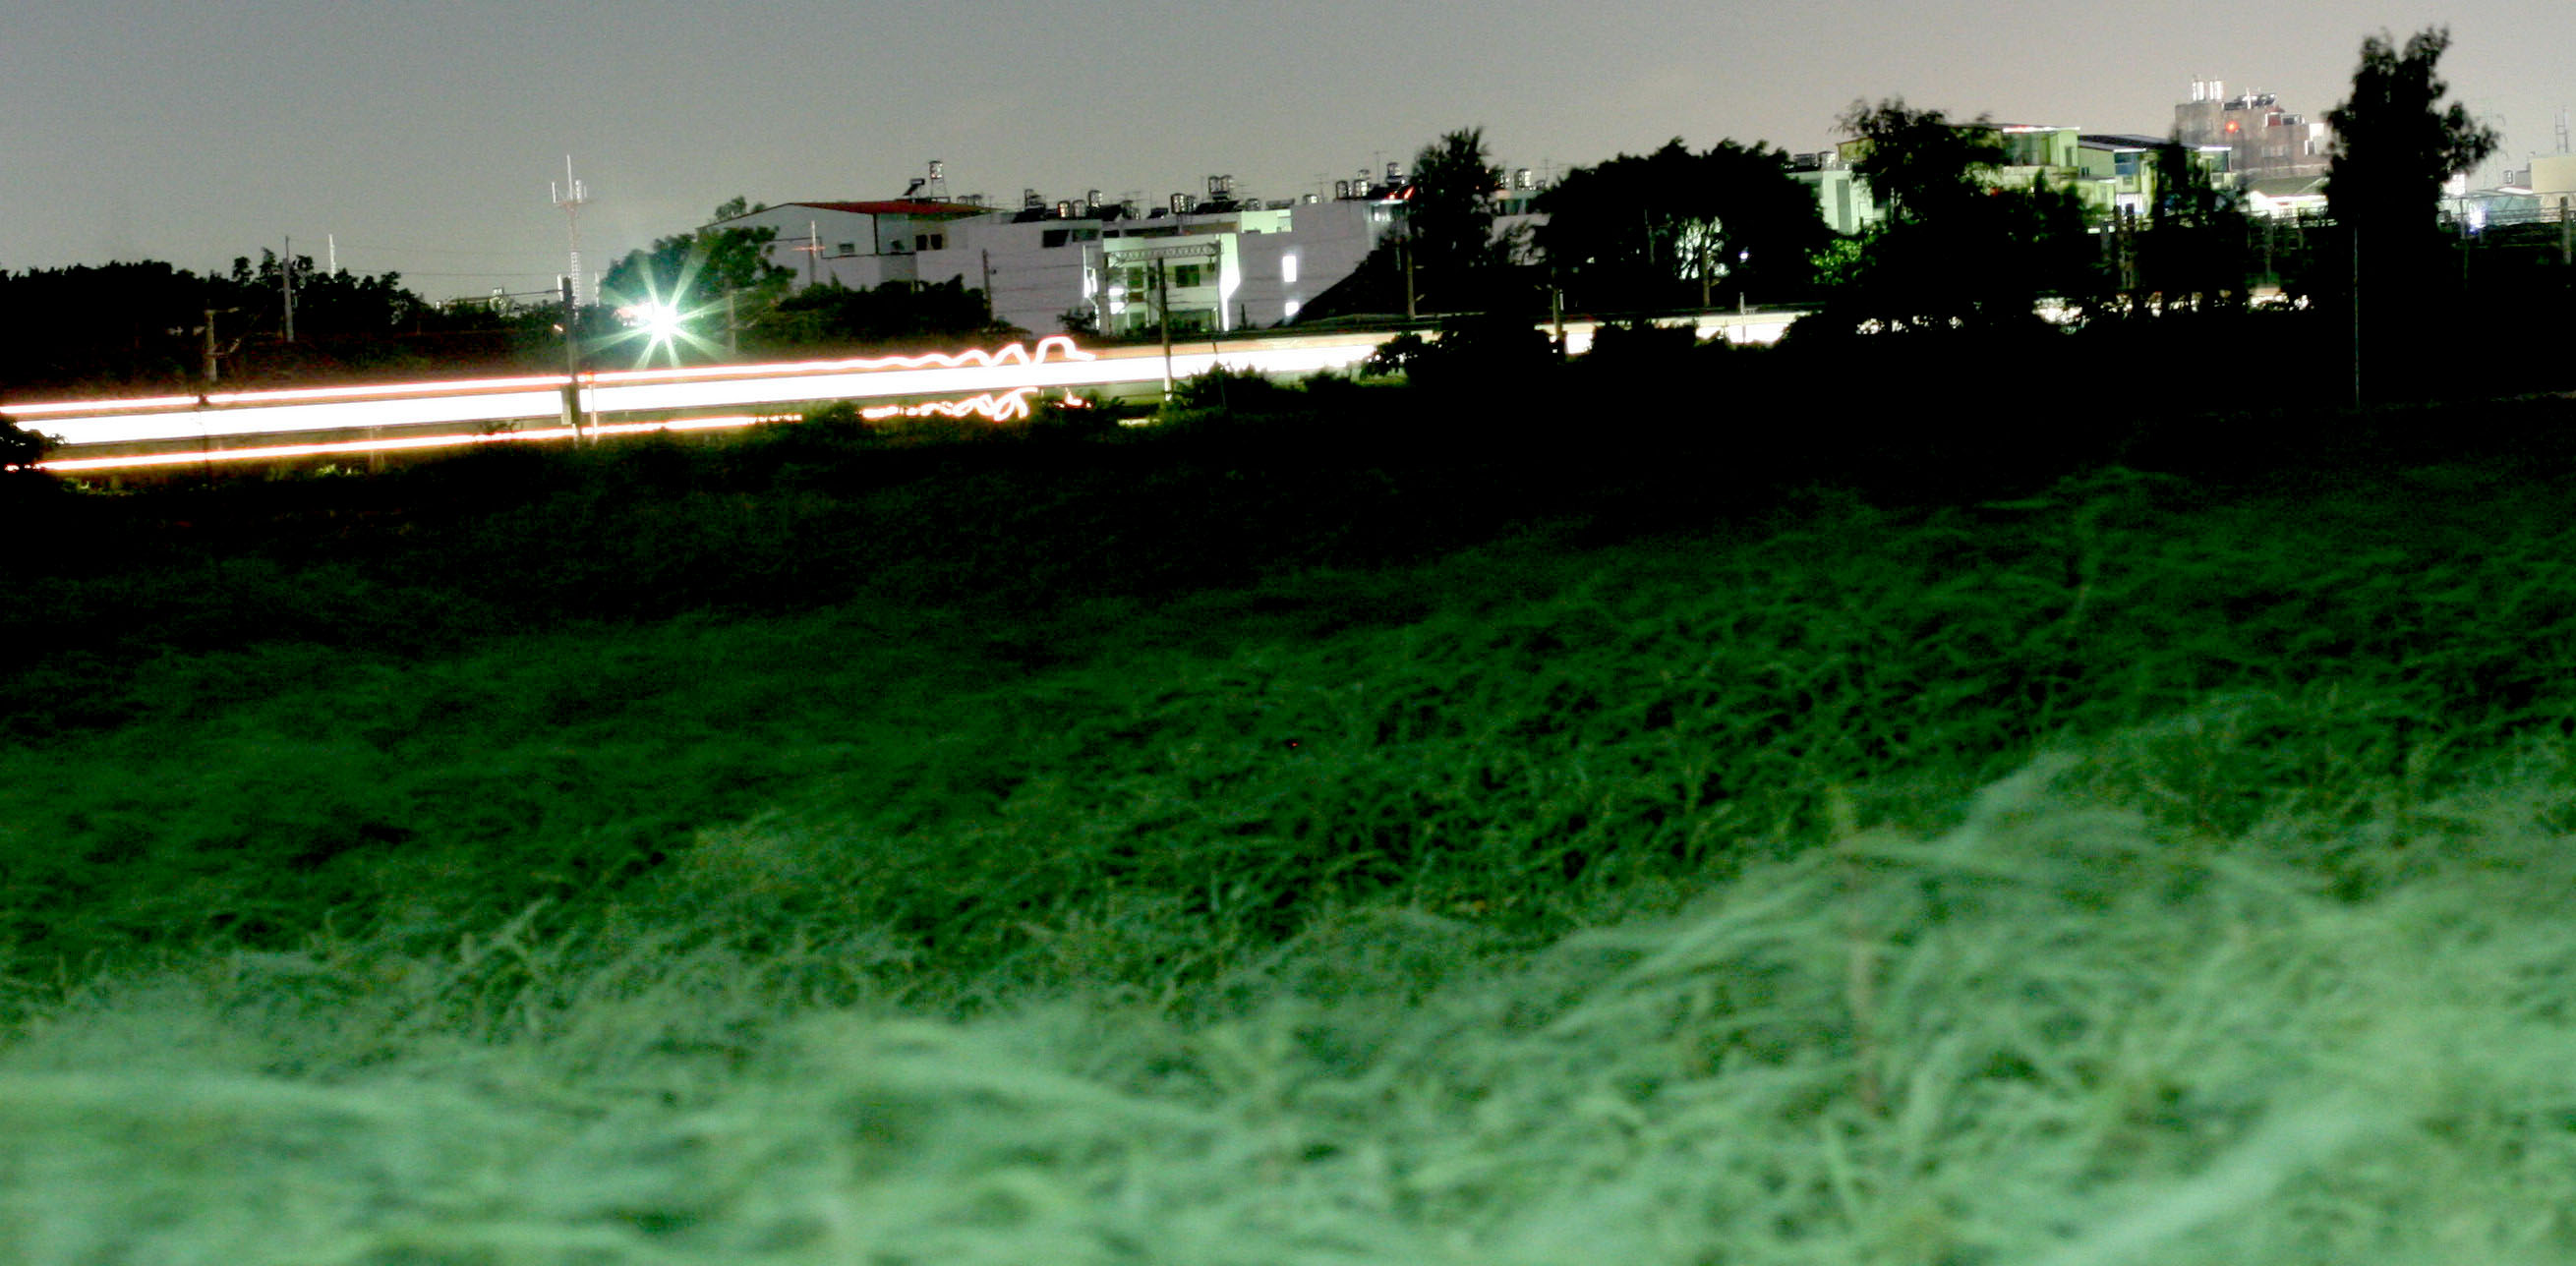 rural countryside at night 16